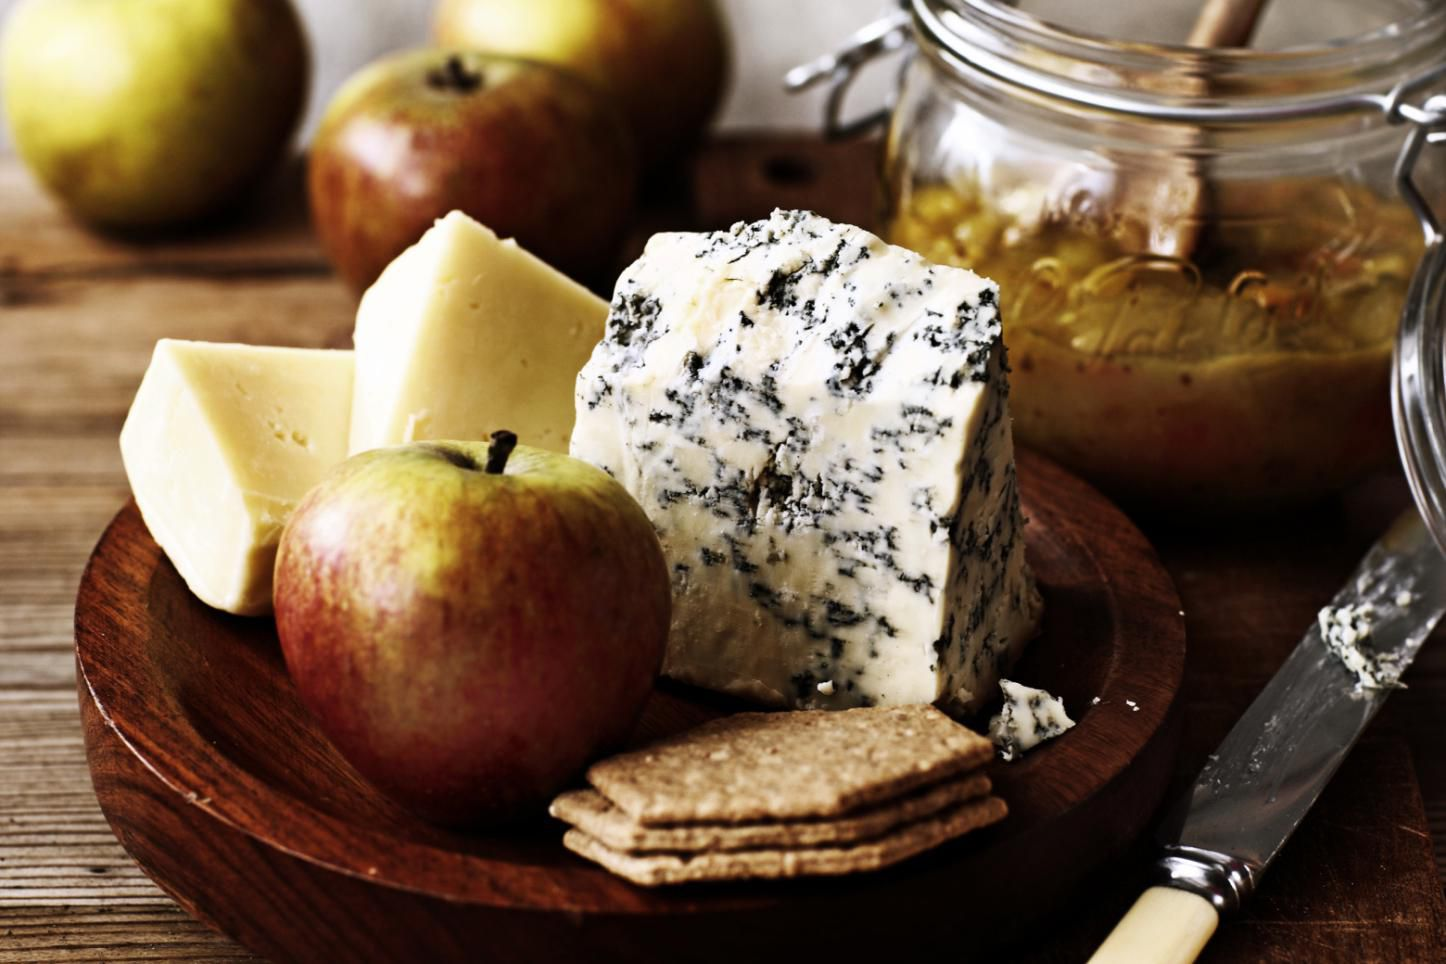 Cheese and chutney on table